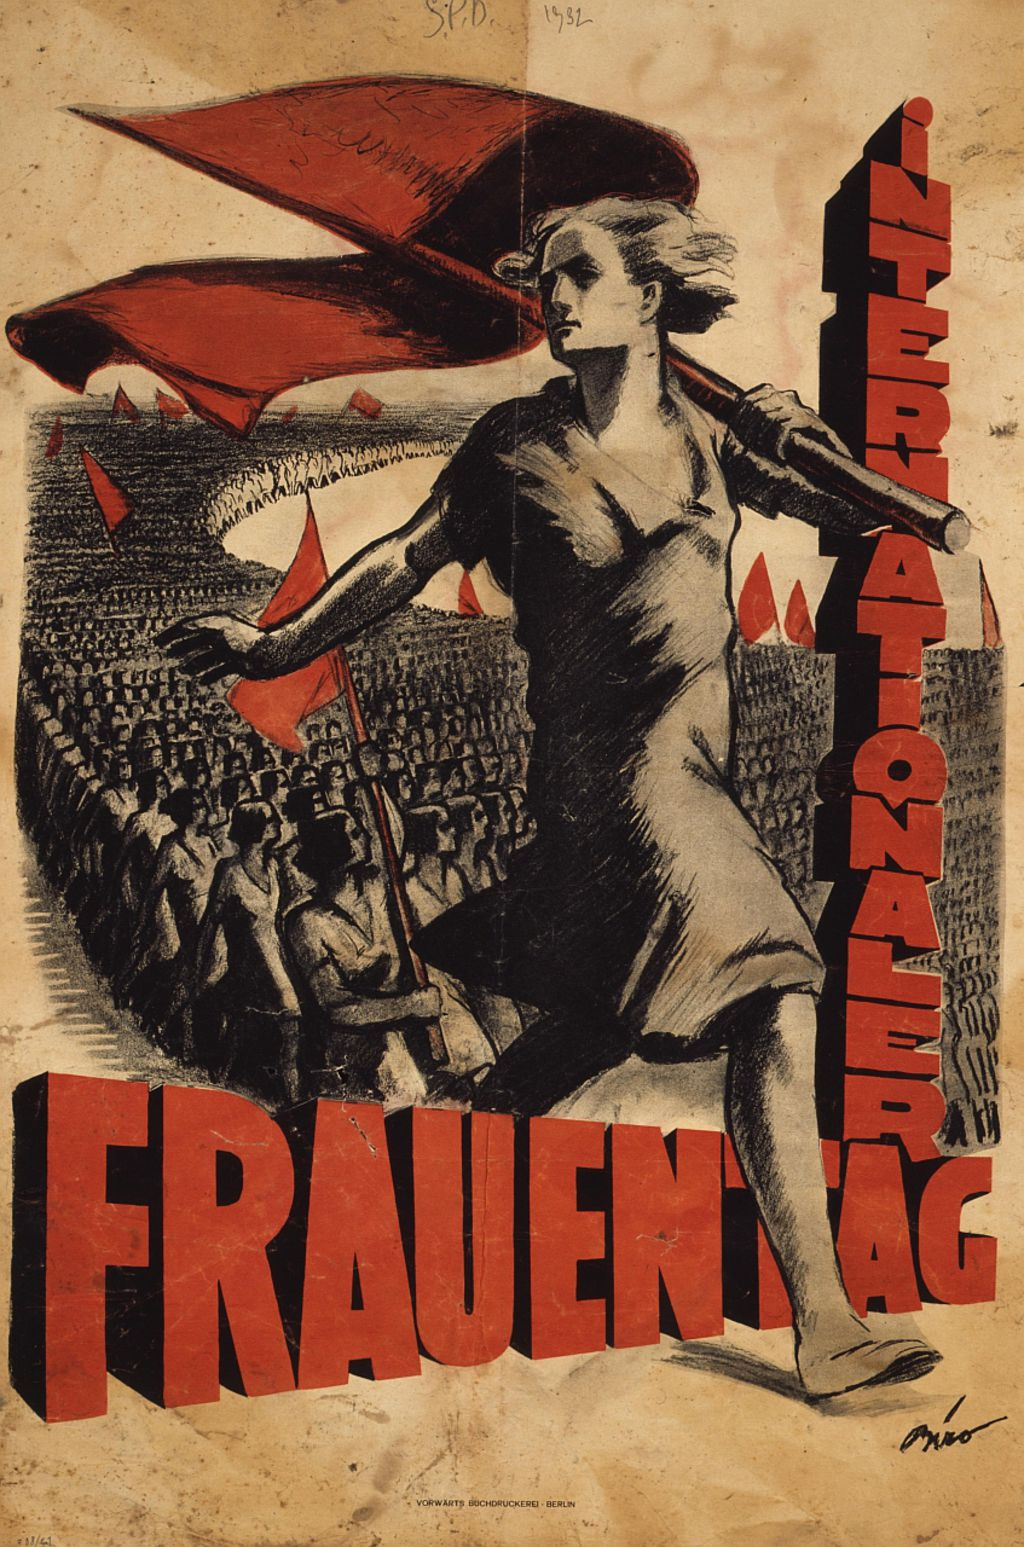 Exponat: Plakat zum Internationalen Frauentag 1932